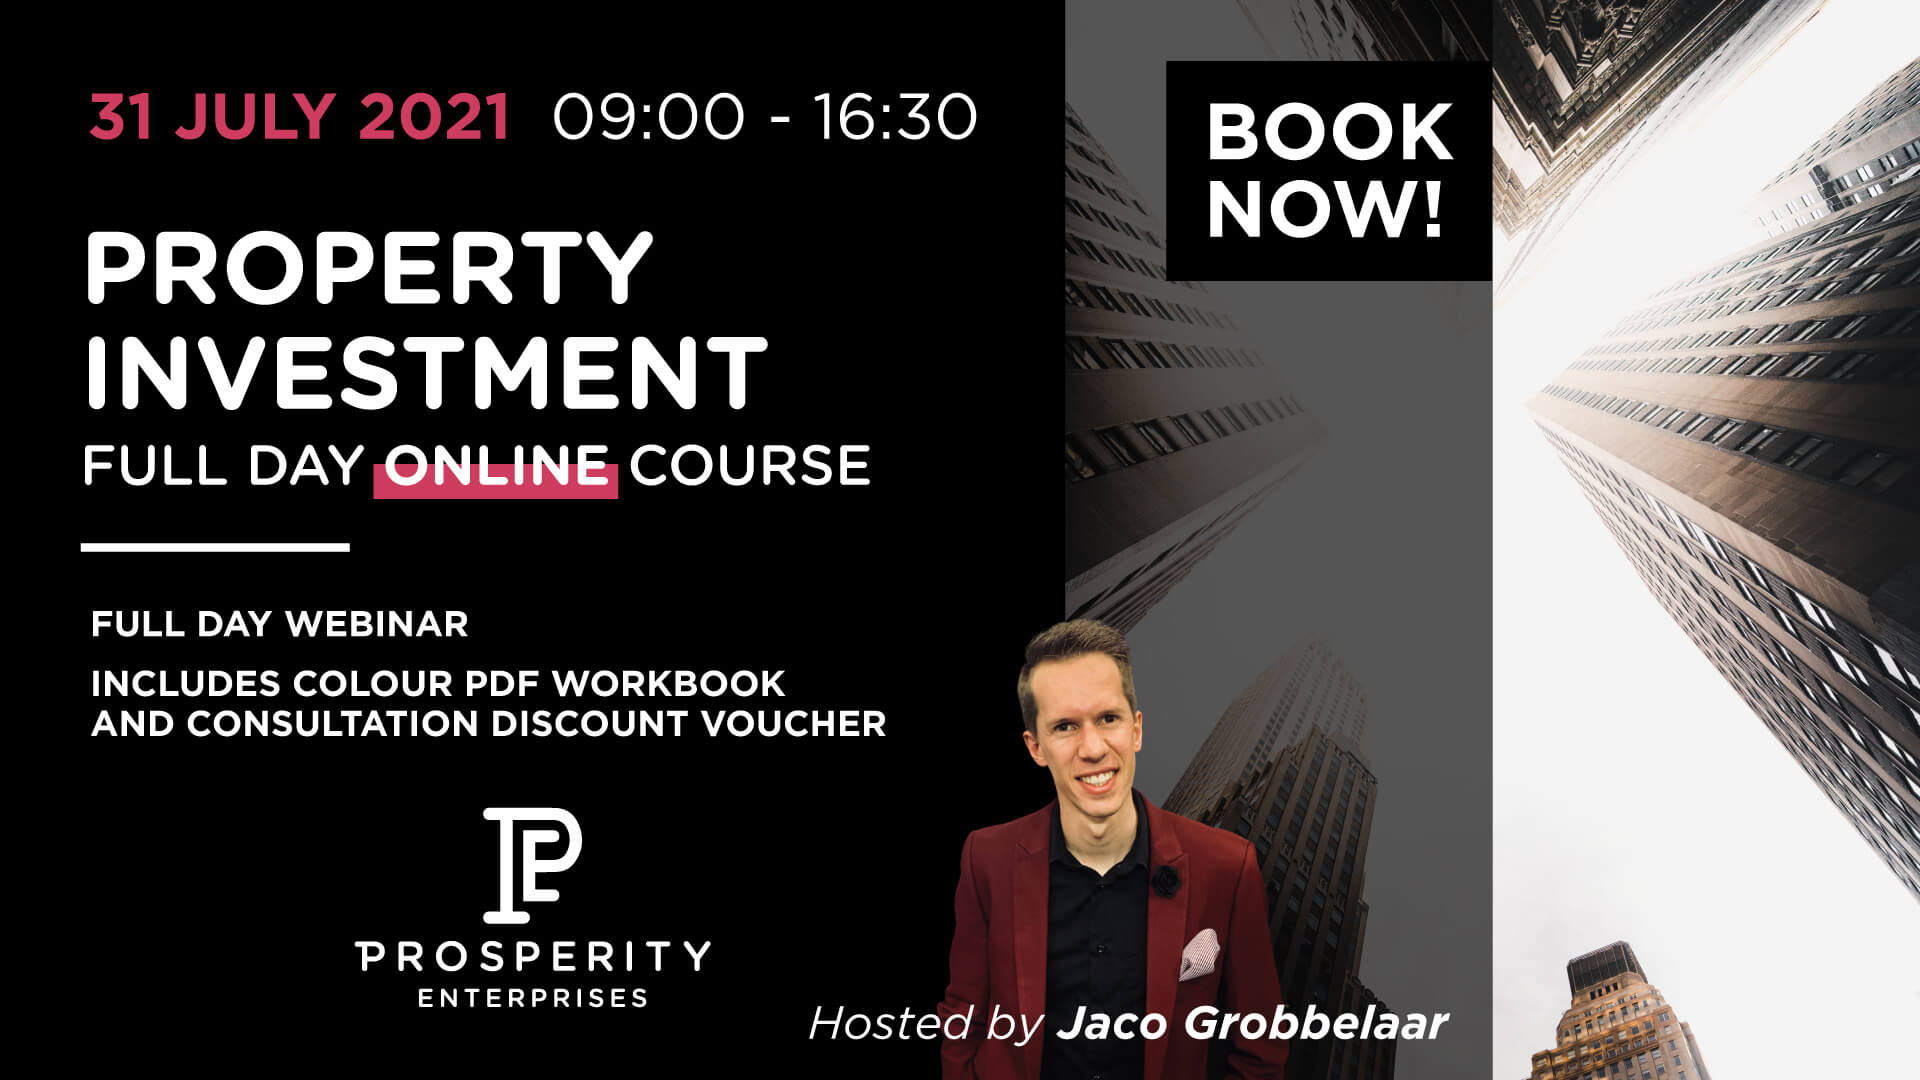 property-investment-full-day-online-course-31072021-1